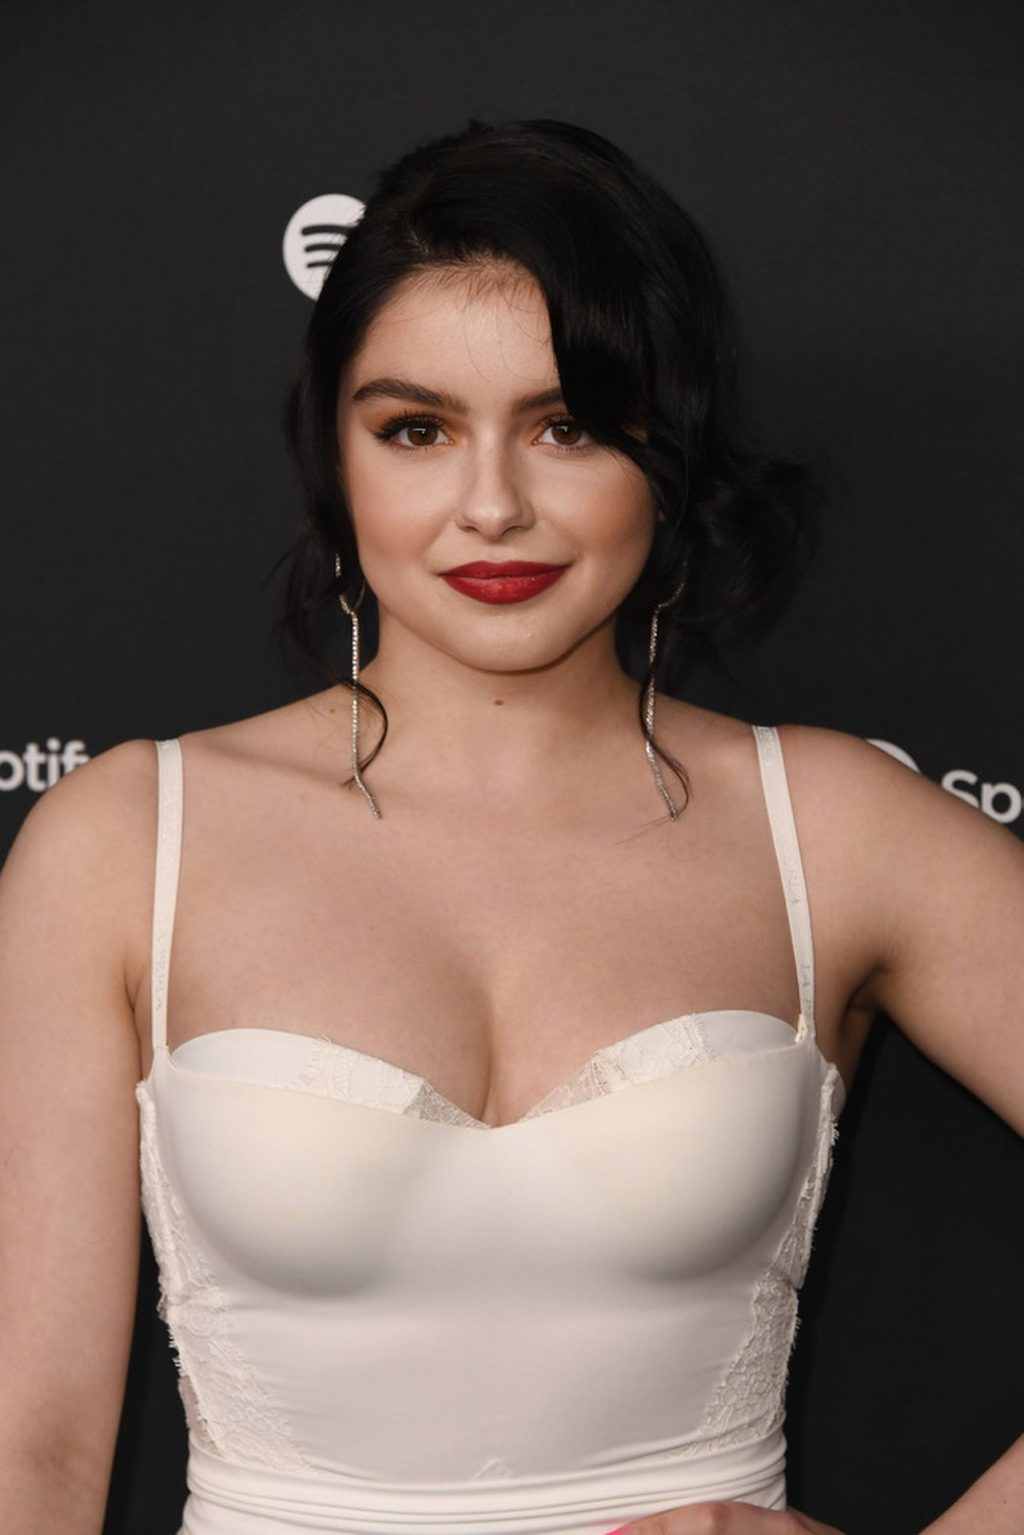 Ariel Winter Shows Her Cleavage at the Best New Artist Party (26 Photos)